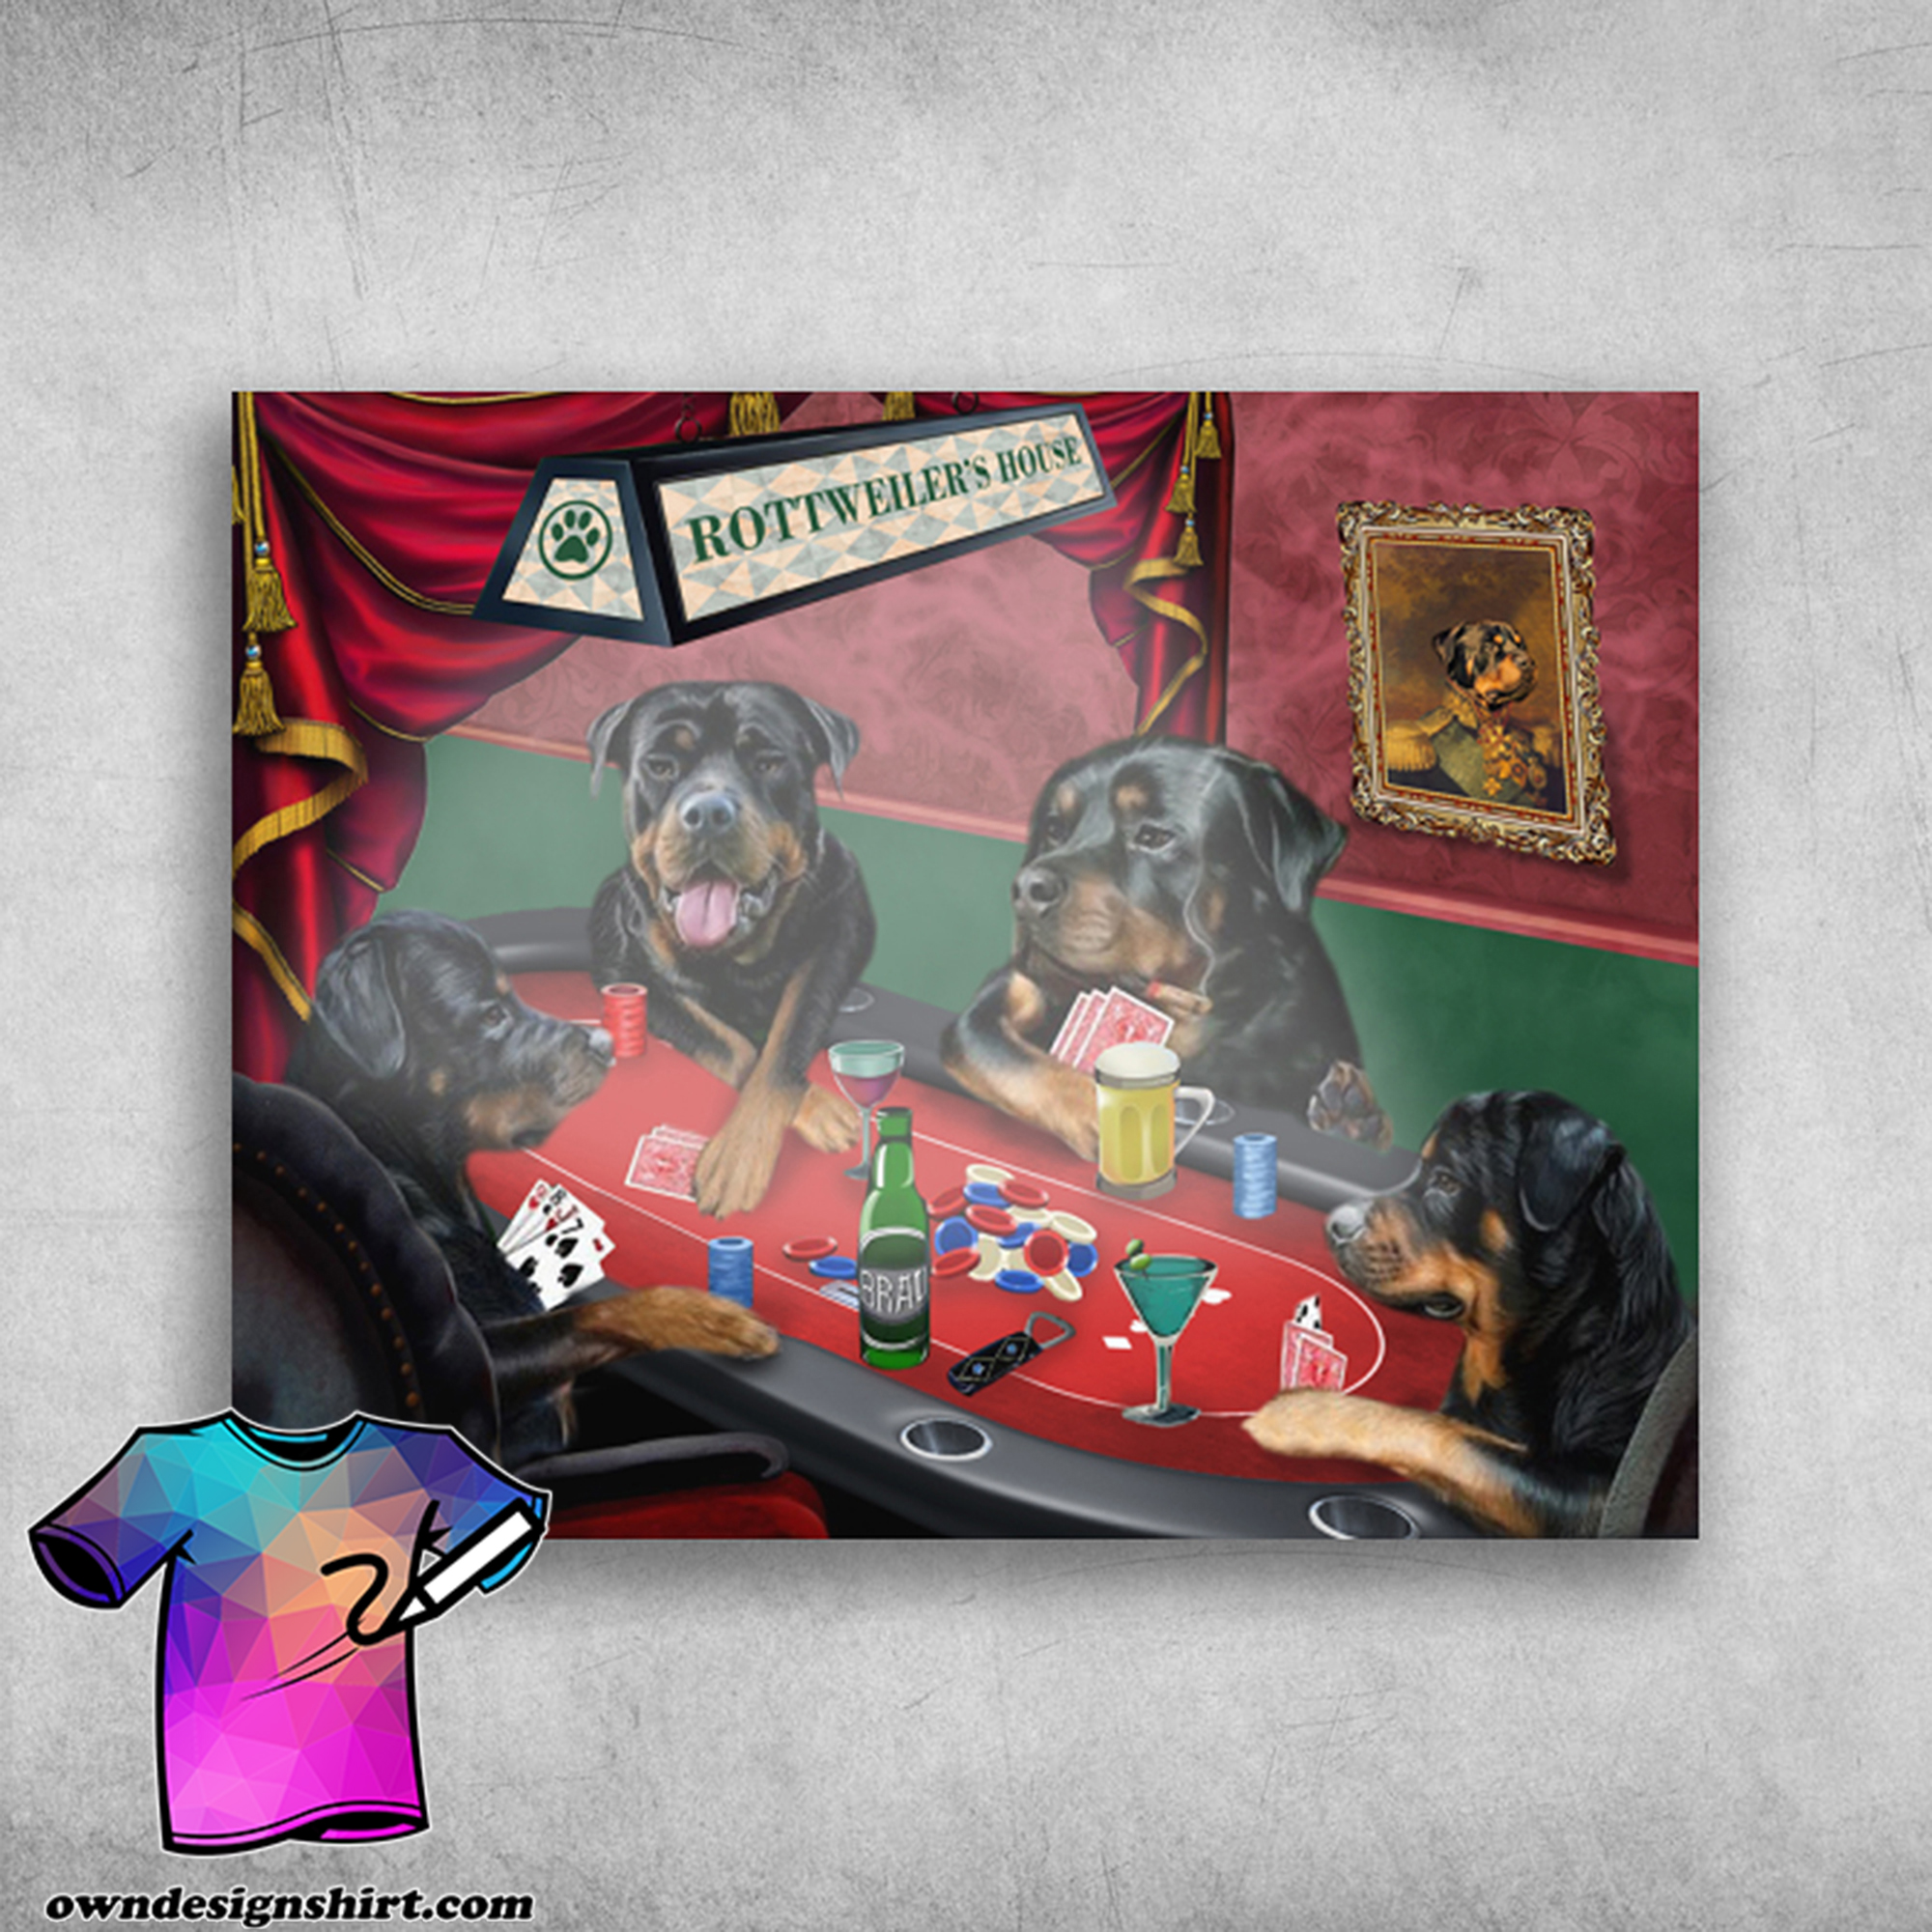 Rottweiler's house rottweiler playing cards poster